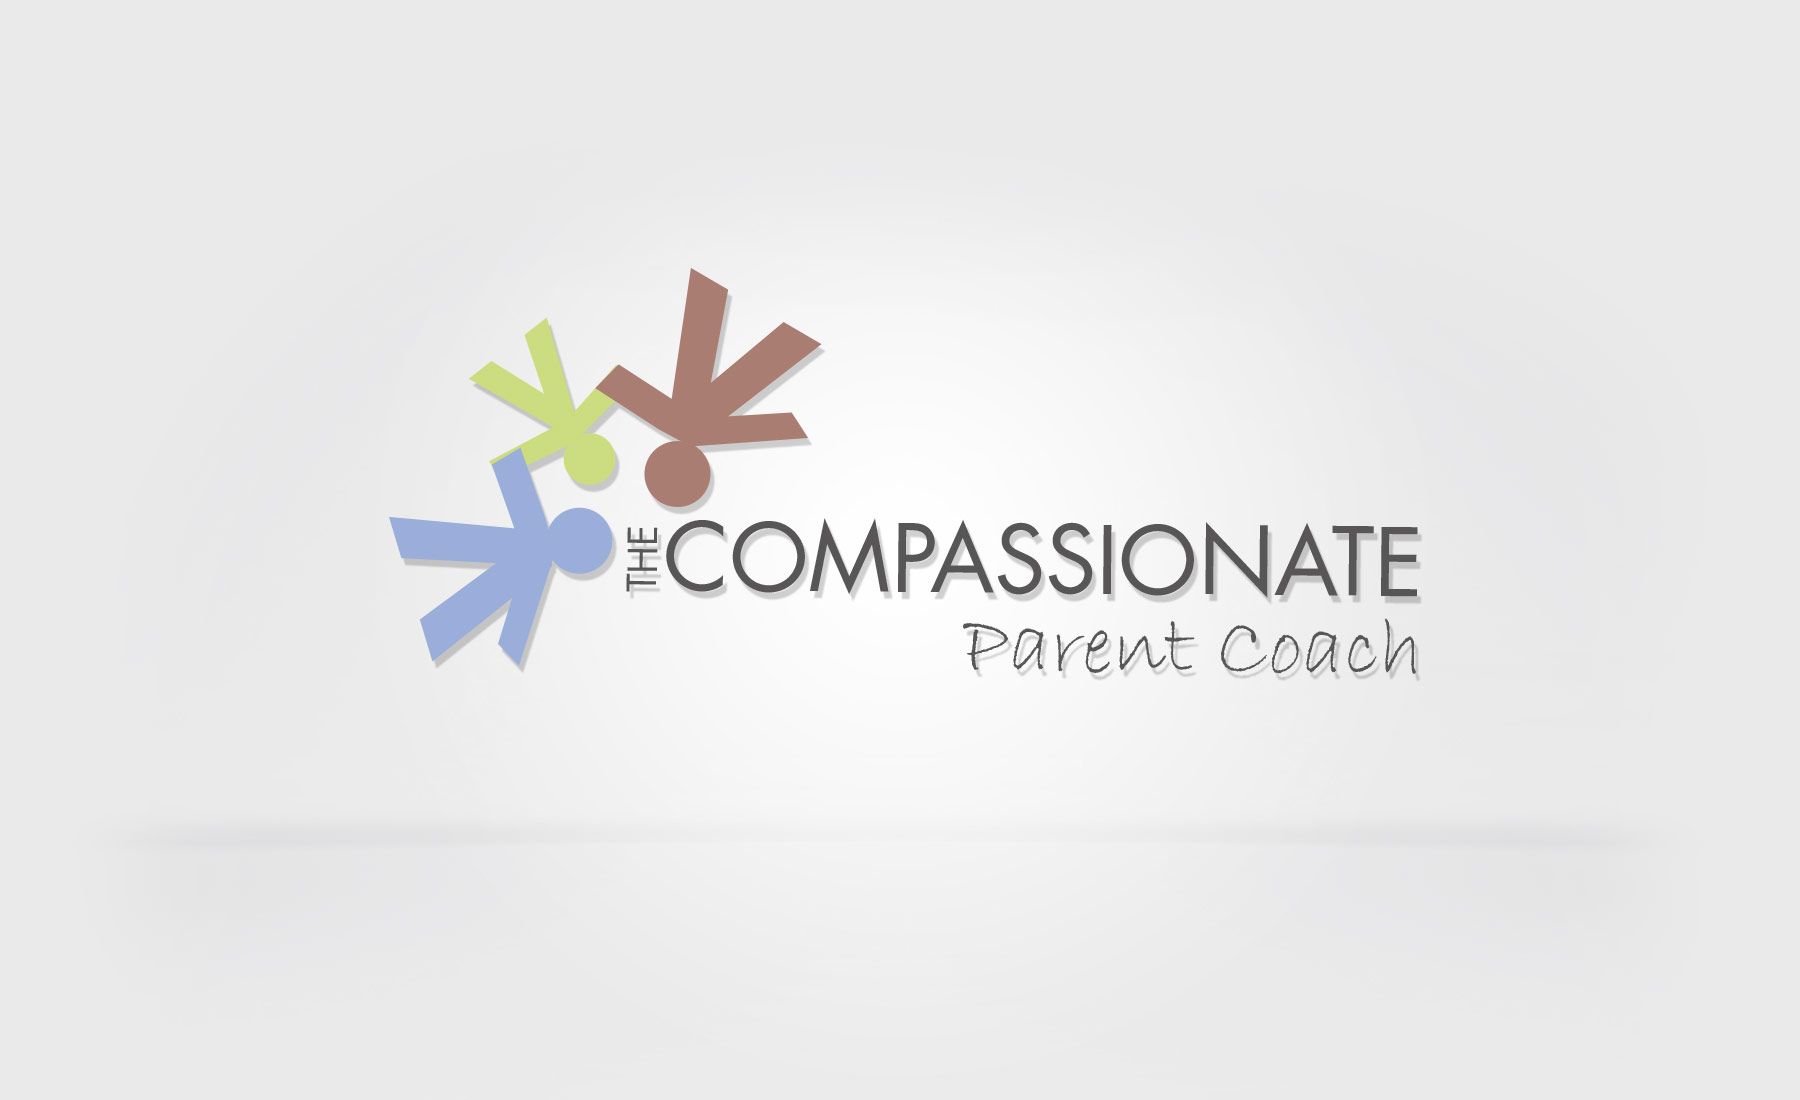 The-compassionate-parent-coachs